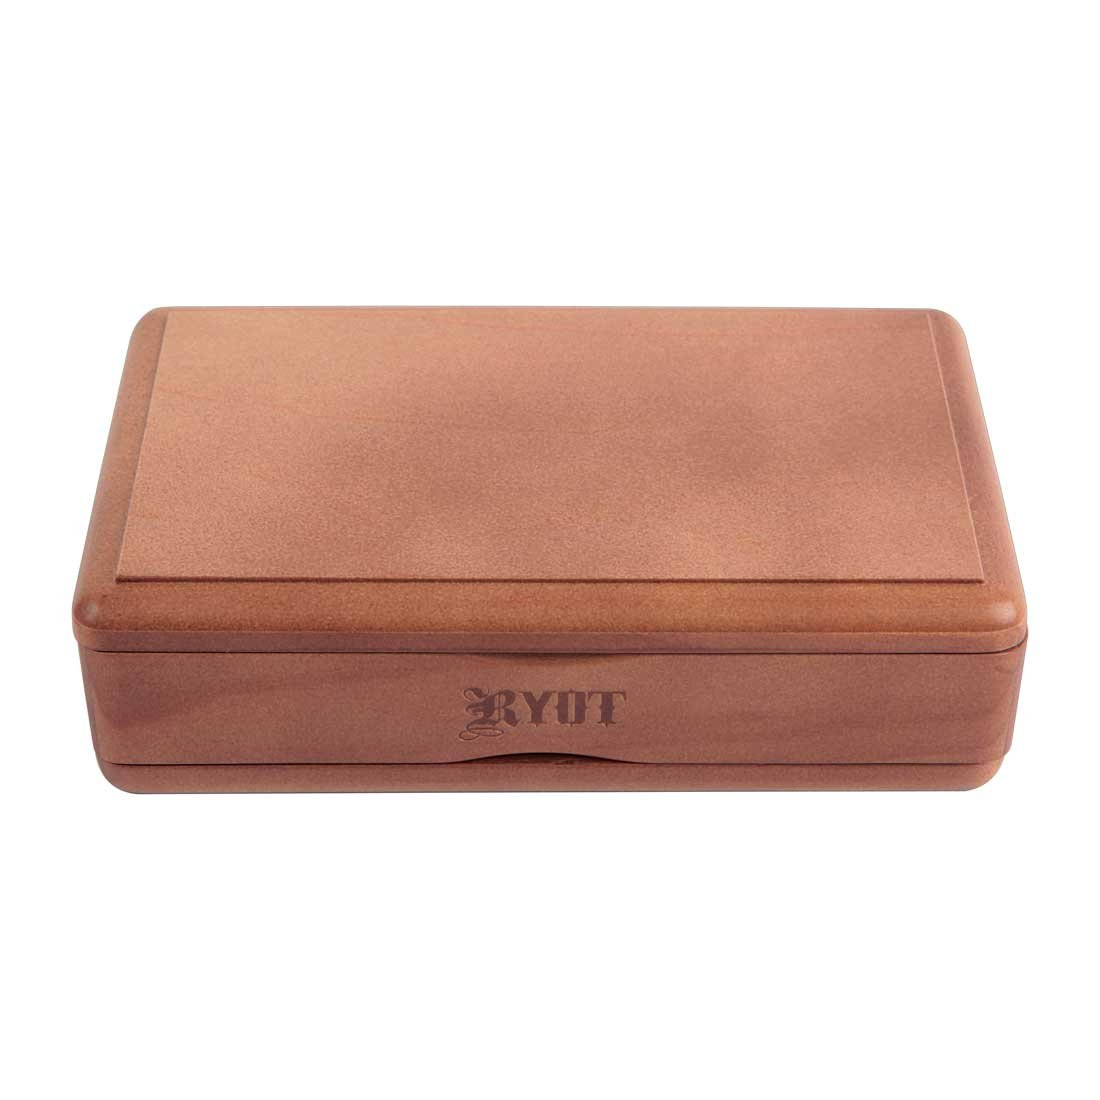 RYOT 4x7'' Solid Top Box in Walnut| Premium Wooden Box Perfect for Sifter - Monofilament Mesh Screen - Glass Base Tray - Prep Card - Pollen Catcher